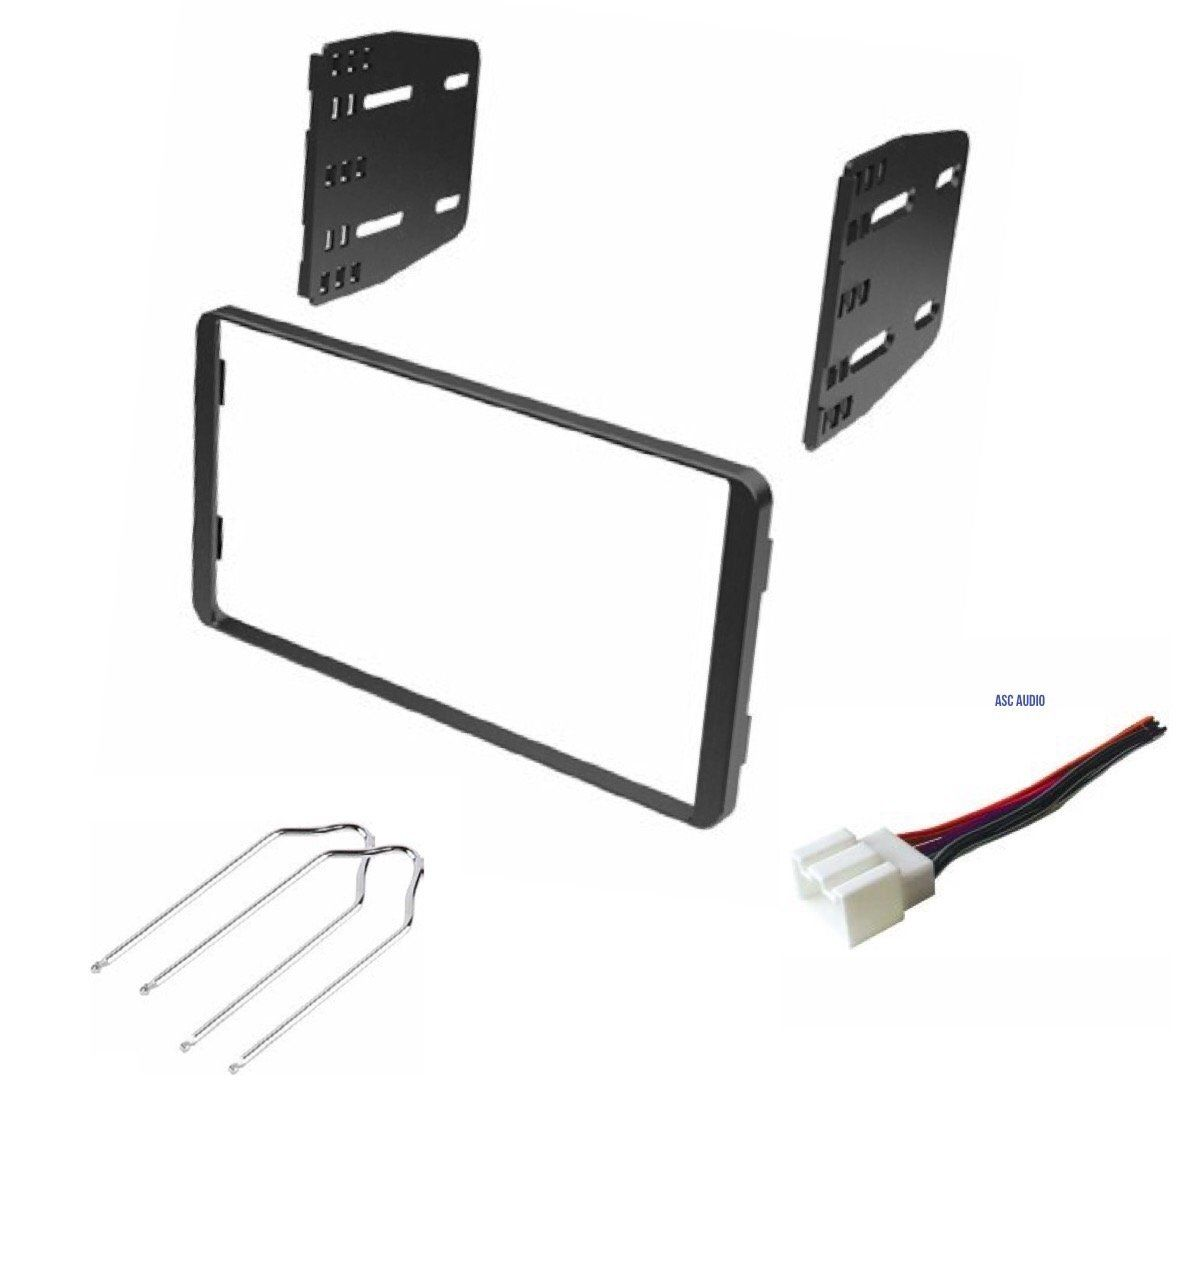 car stereo dash kit wire harness and radio tool for installing a double din radio for 1998 2008 ford econoline 1999 2003 ford f 150 1999 2004 ford  [ 1200 x 1266 Pixel ]